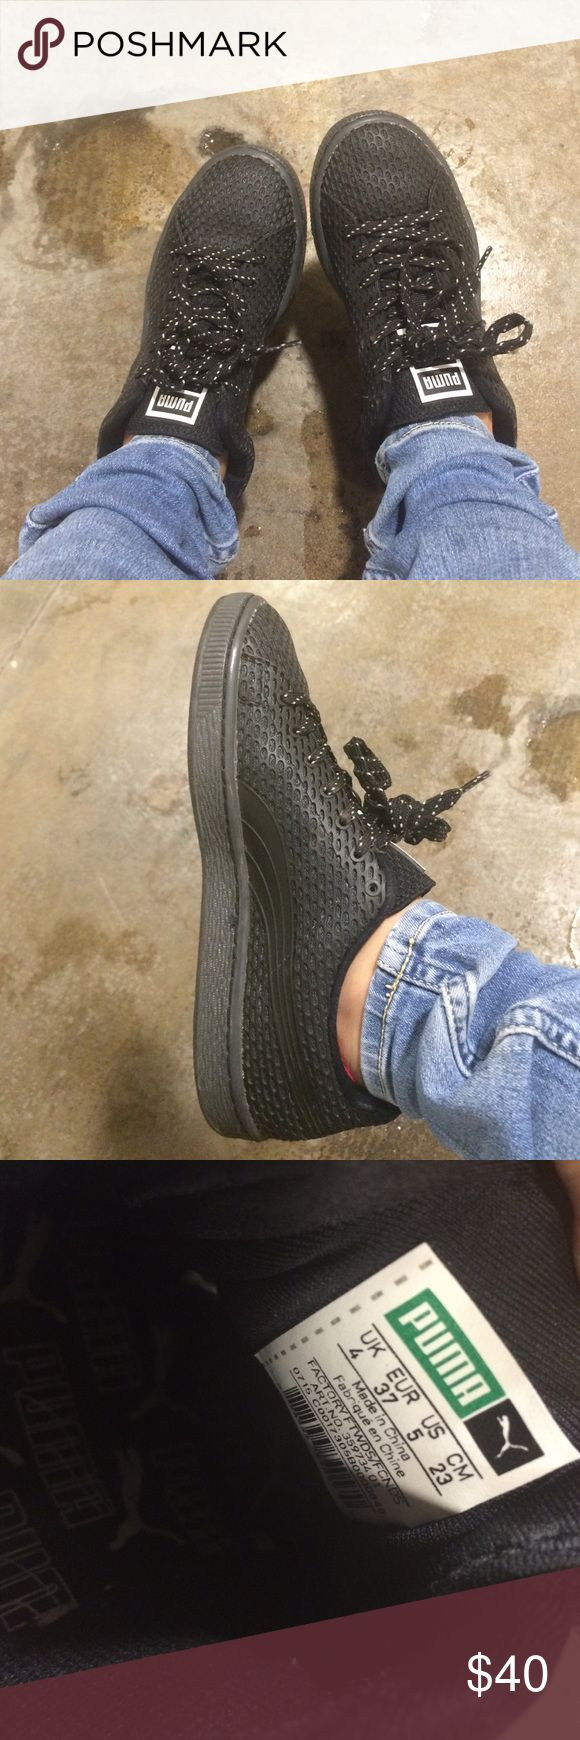 Puma Classic Black Rubber Sneakers. only worn a couple times, still in great condition no wear on soles or inside, size US on women is 5 but they fit kind of big so it fits like a 5.5 or 6. Puma Shoes Sneakers